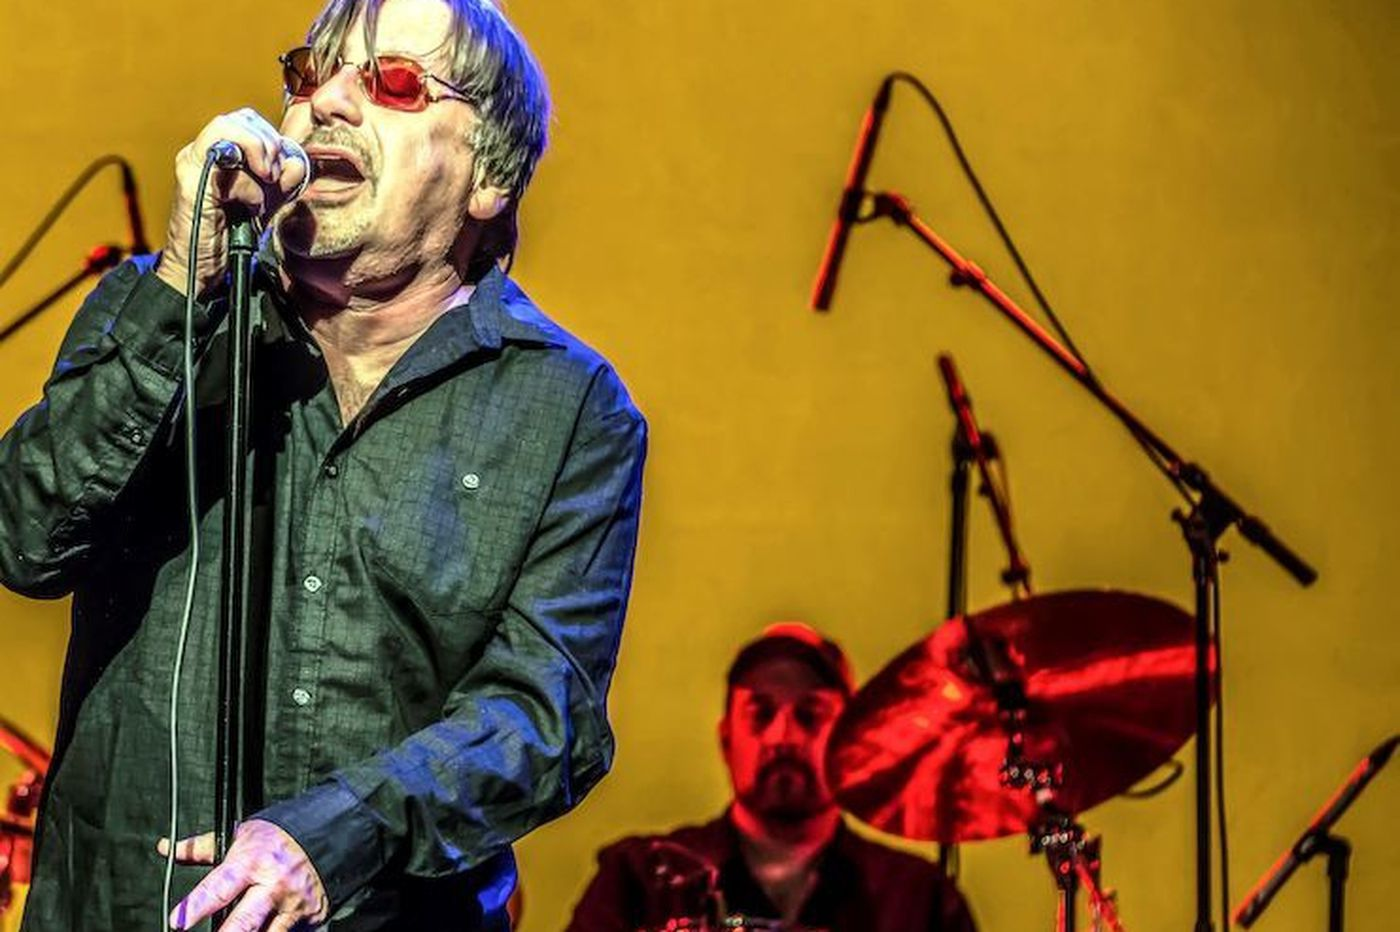 'It was just perfect': Southside Johnny on his glory days with Springsteen and Miami Steve in Asbury Park